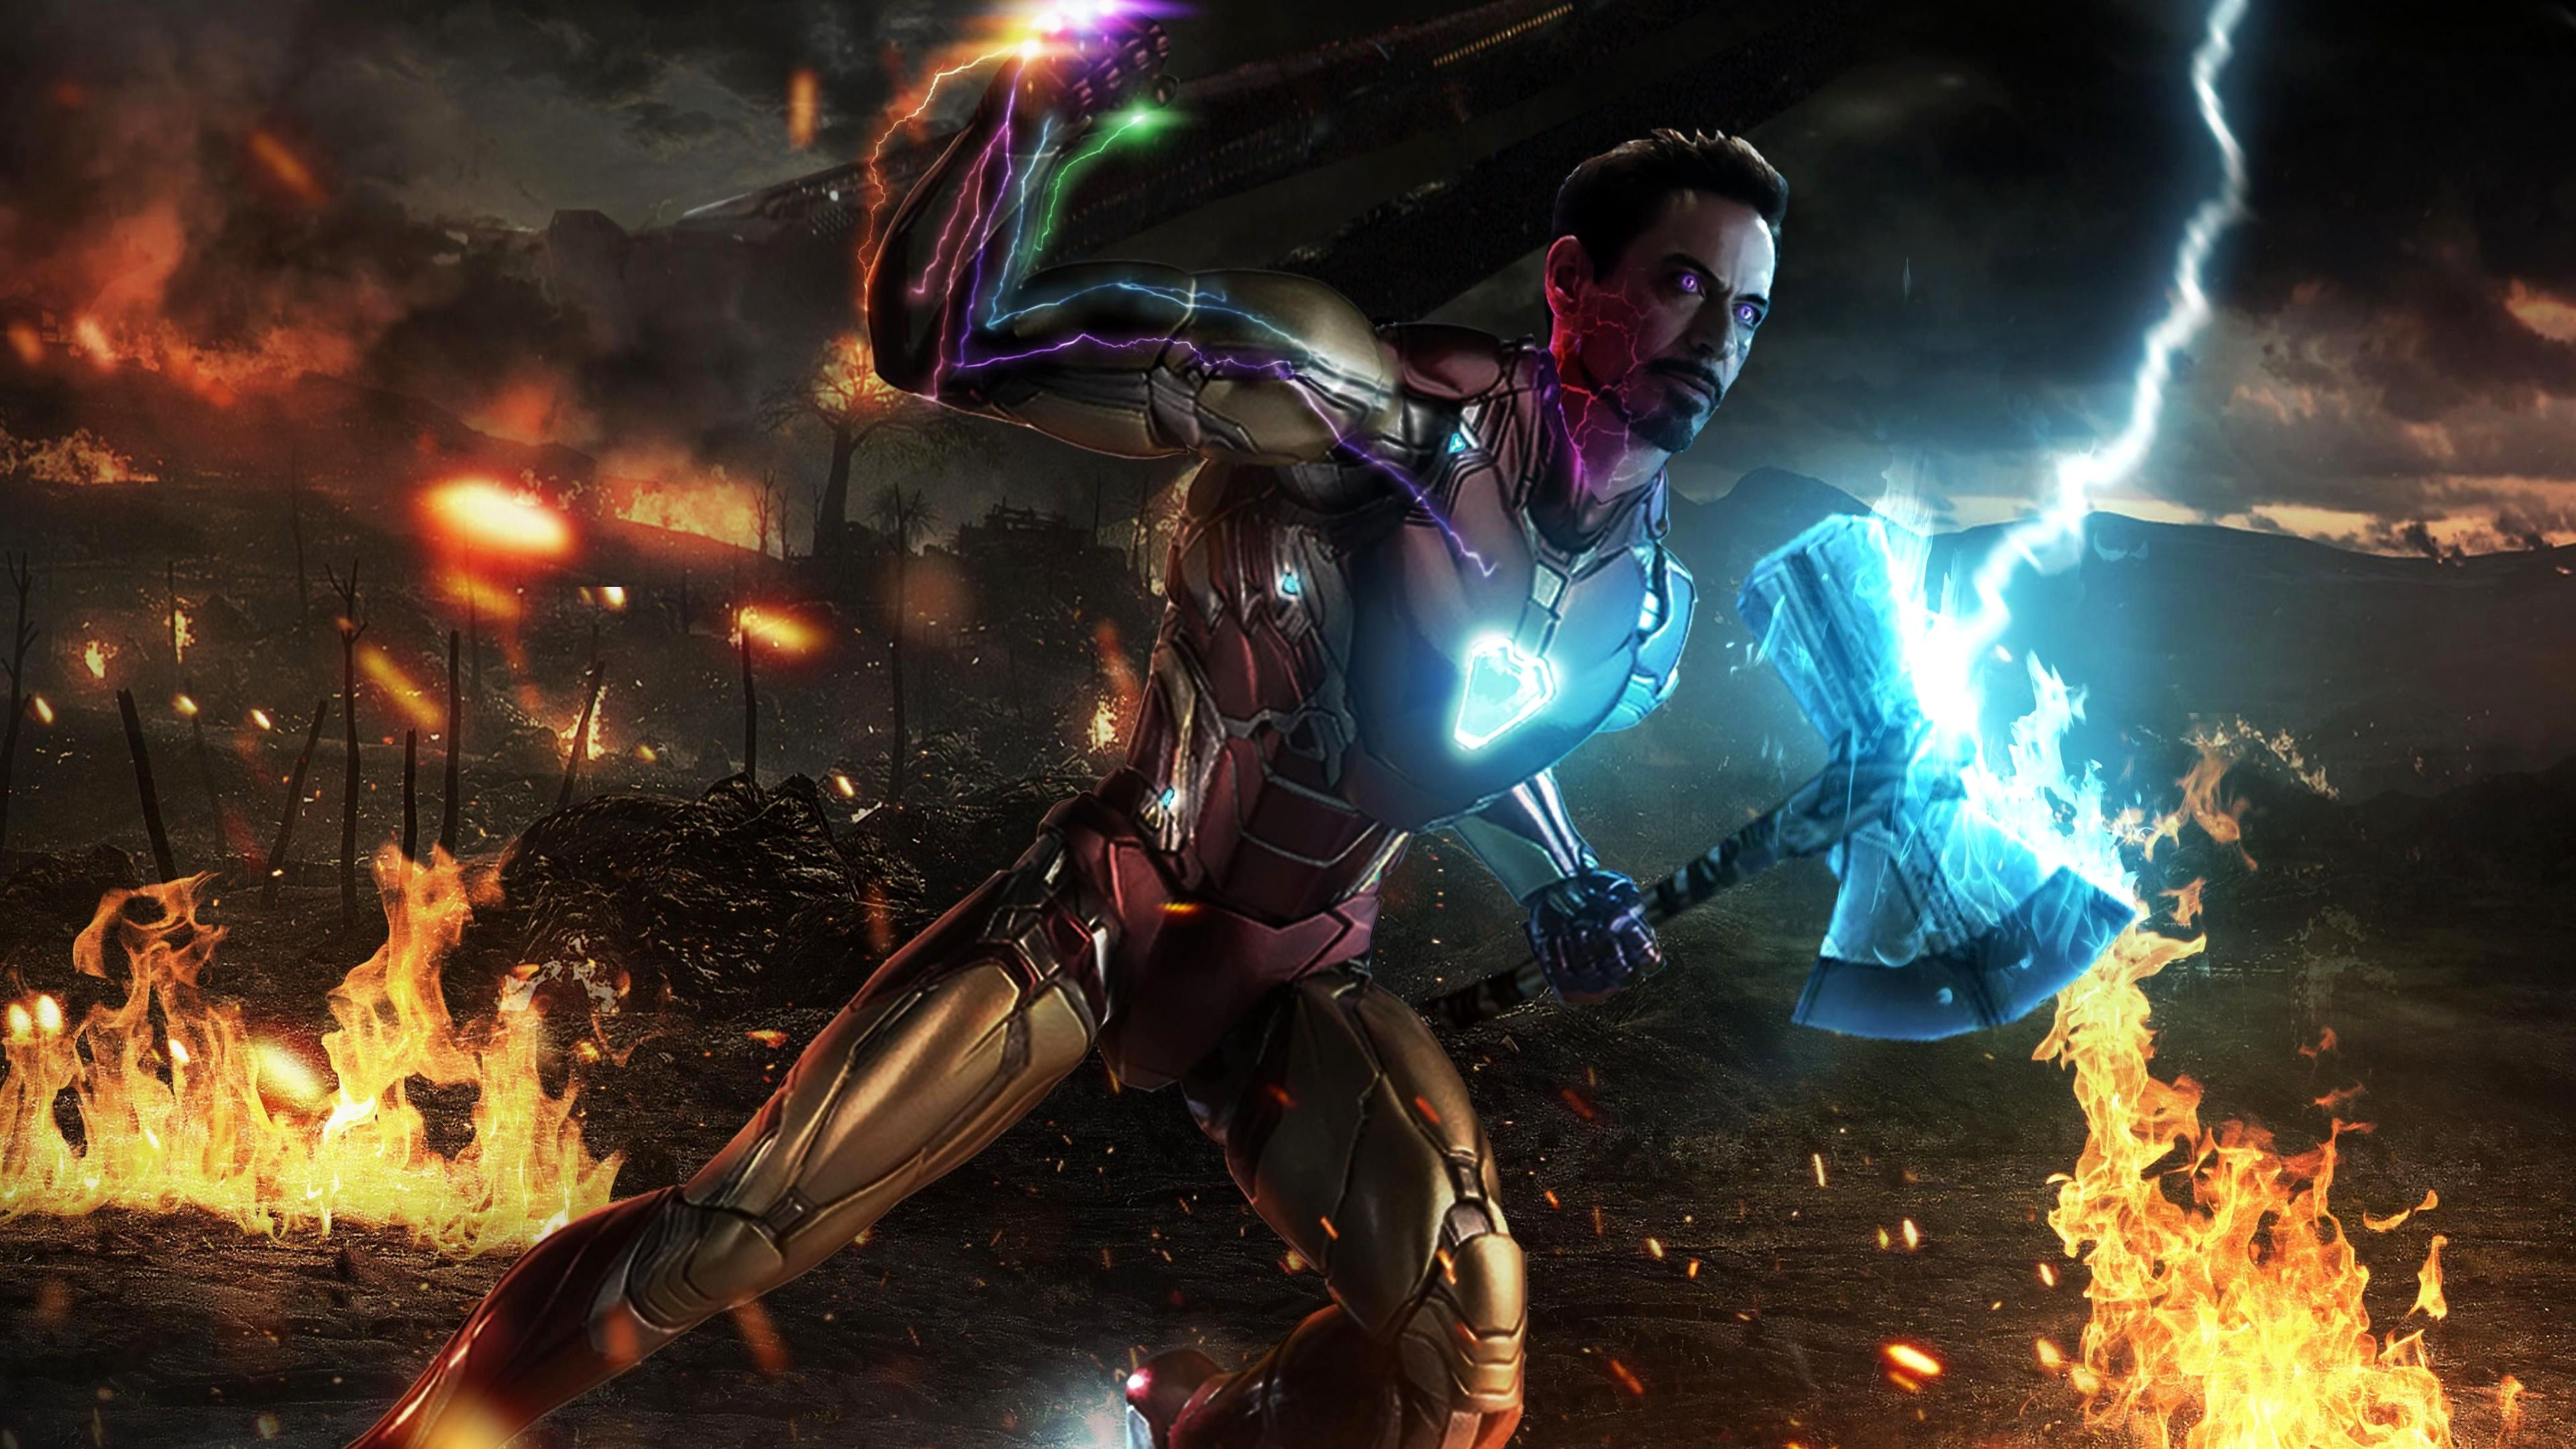 4k Wallpaper For Pc Of Iron Man Gallery Iron Man Hd Wallpaper Iron Man Wallpaper Iron Man